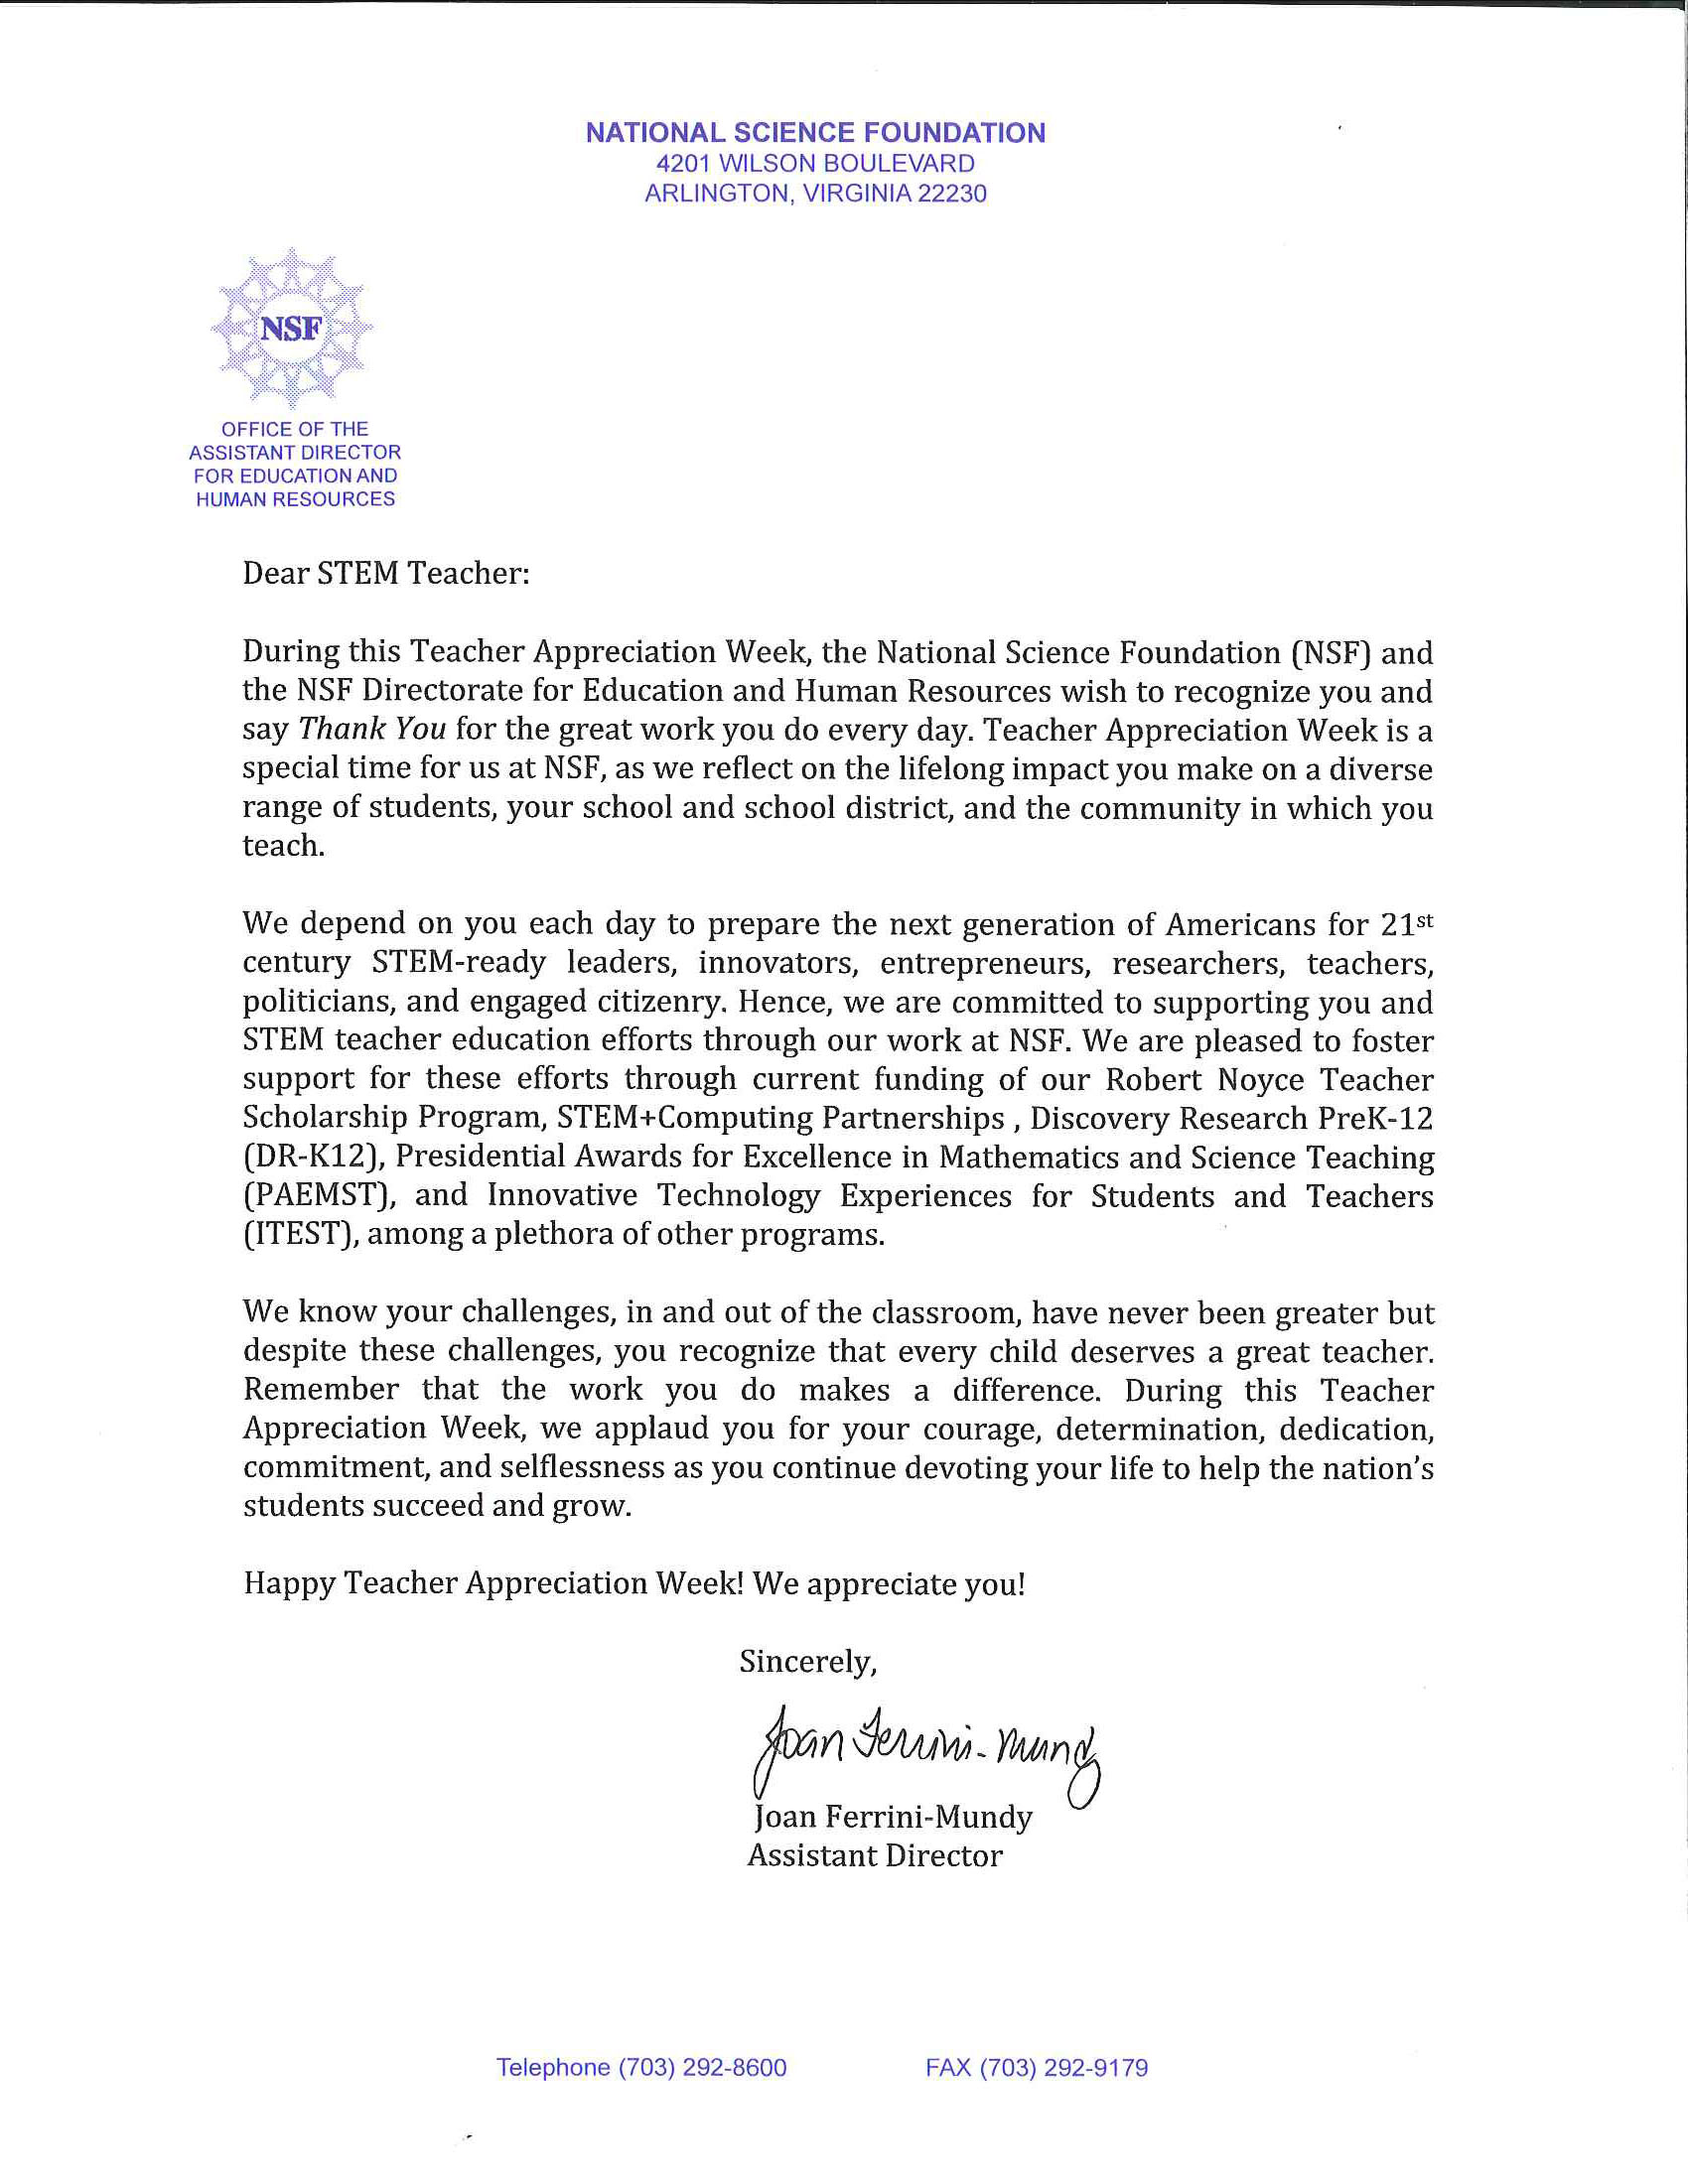 Teacher appreciation week a letter from the nsf announce letter from joan ferrini mundy spiritdancerdesigns Images